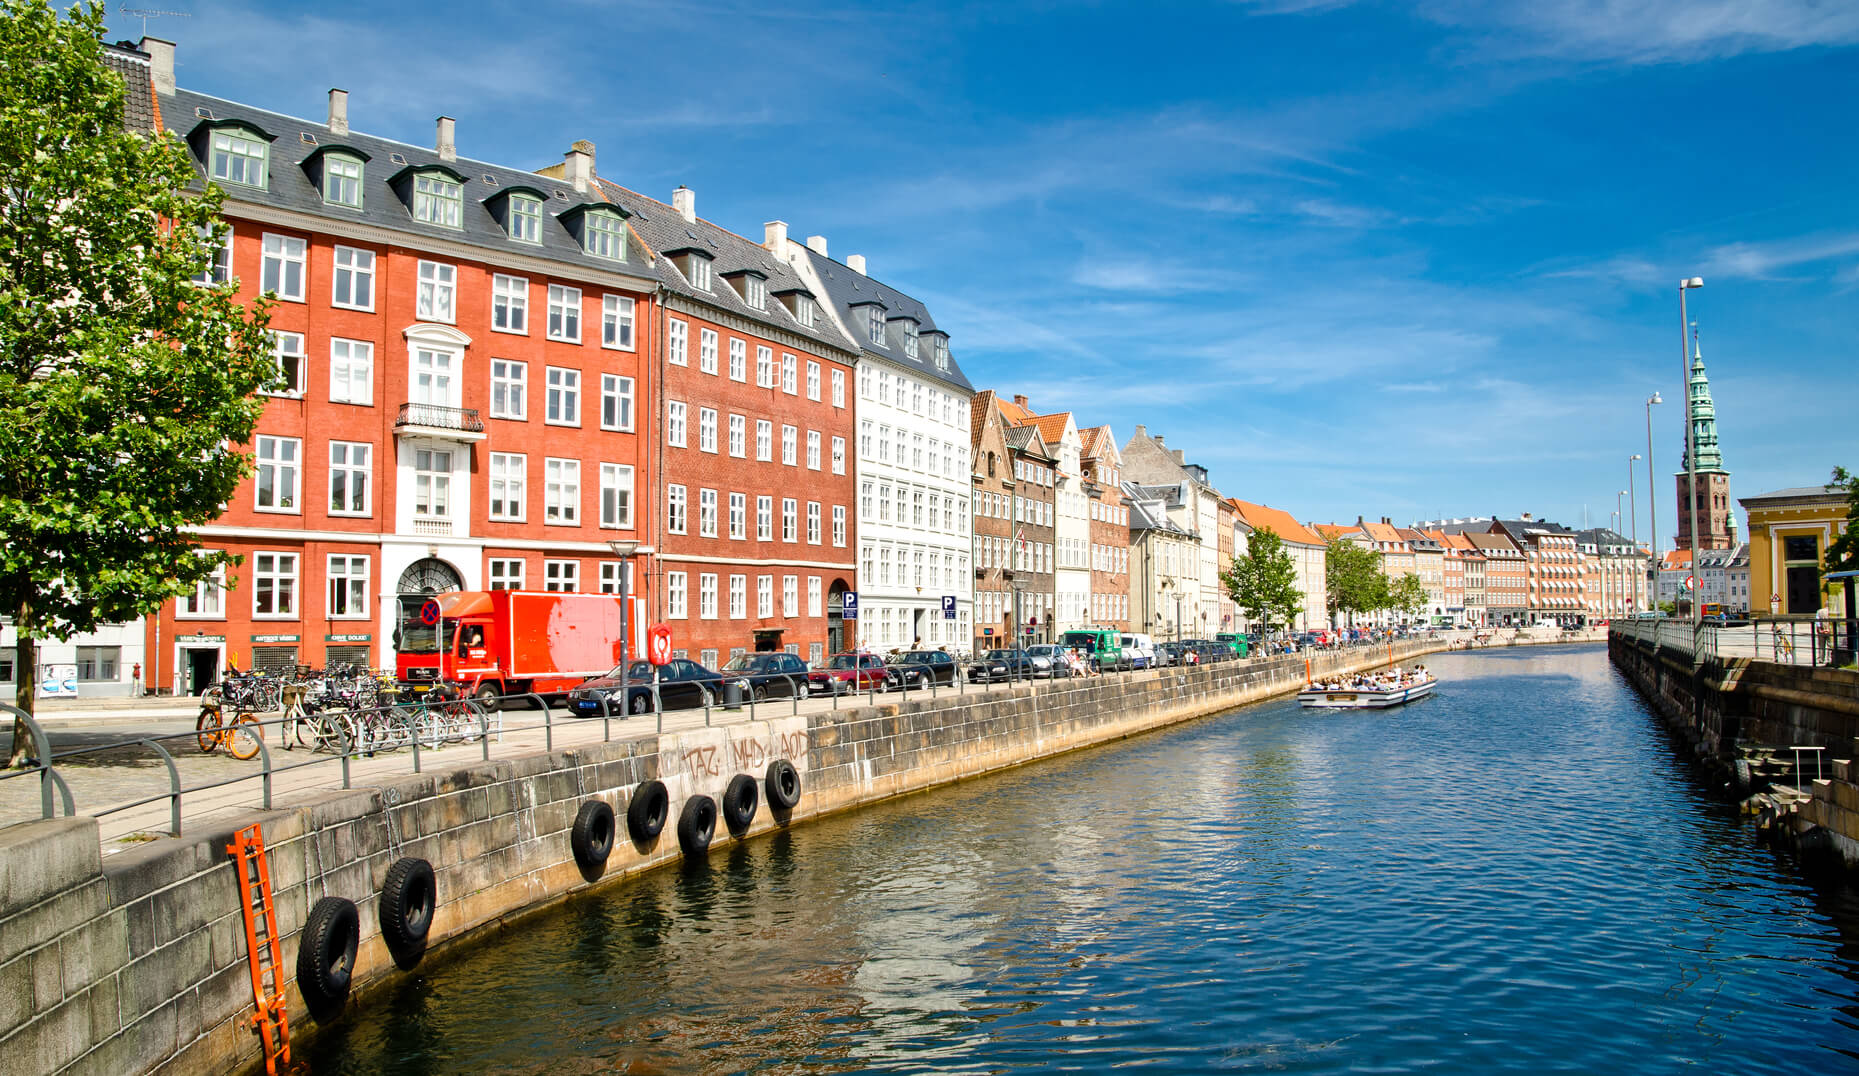 CRAZY HOT!! London, UK to Copenhagen, Denmark for only £1 one-way (& vice versa for €2)